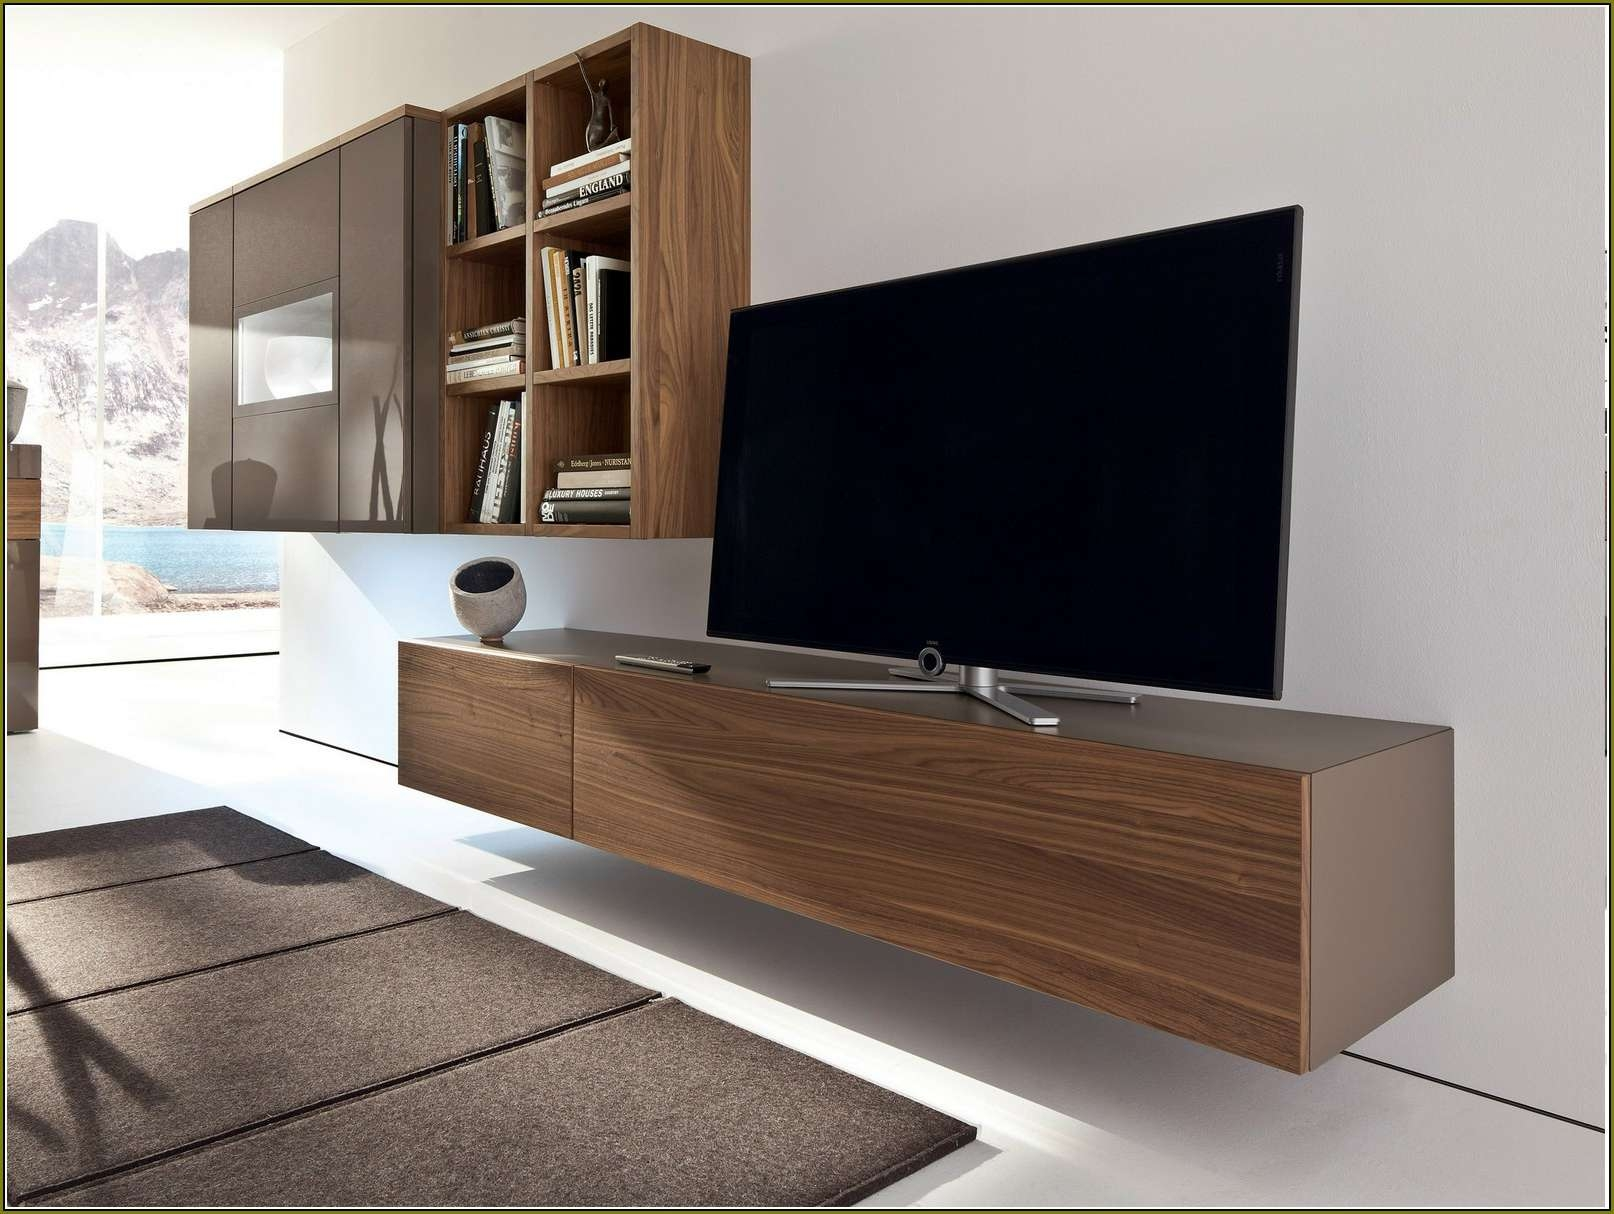 Indian Rosewood Wall Mounted Tv Cabinet With Sliding Door Panel Pertaining To Wall Mounted Tv Cabinets With Doors (View 5 of 20)